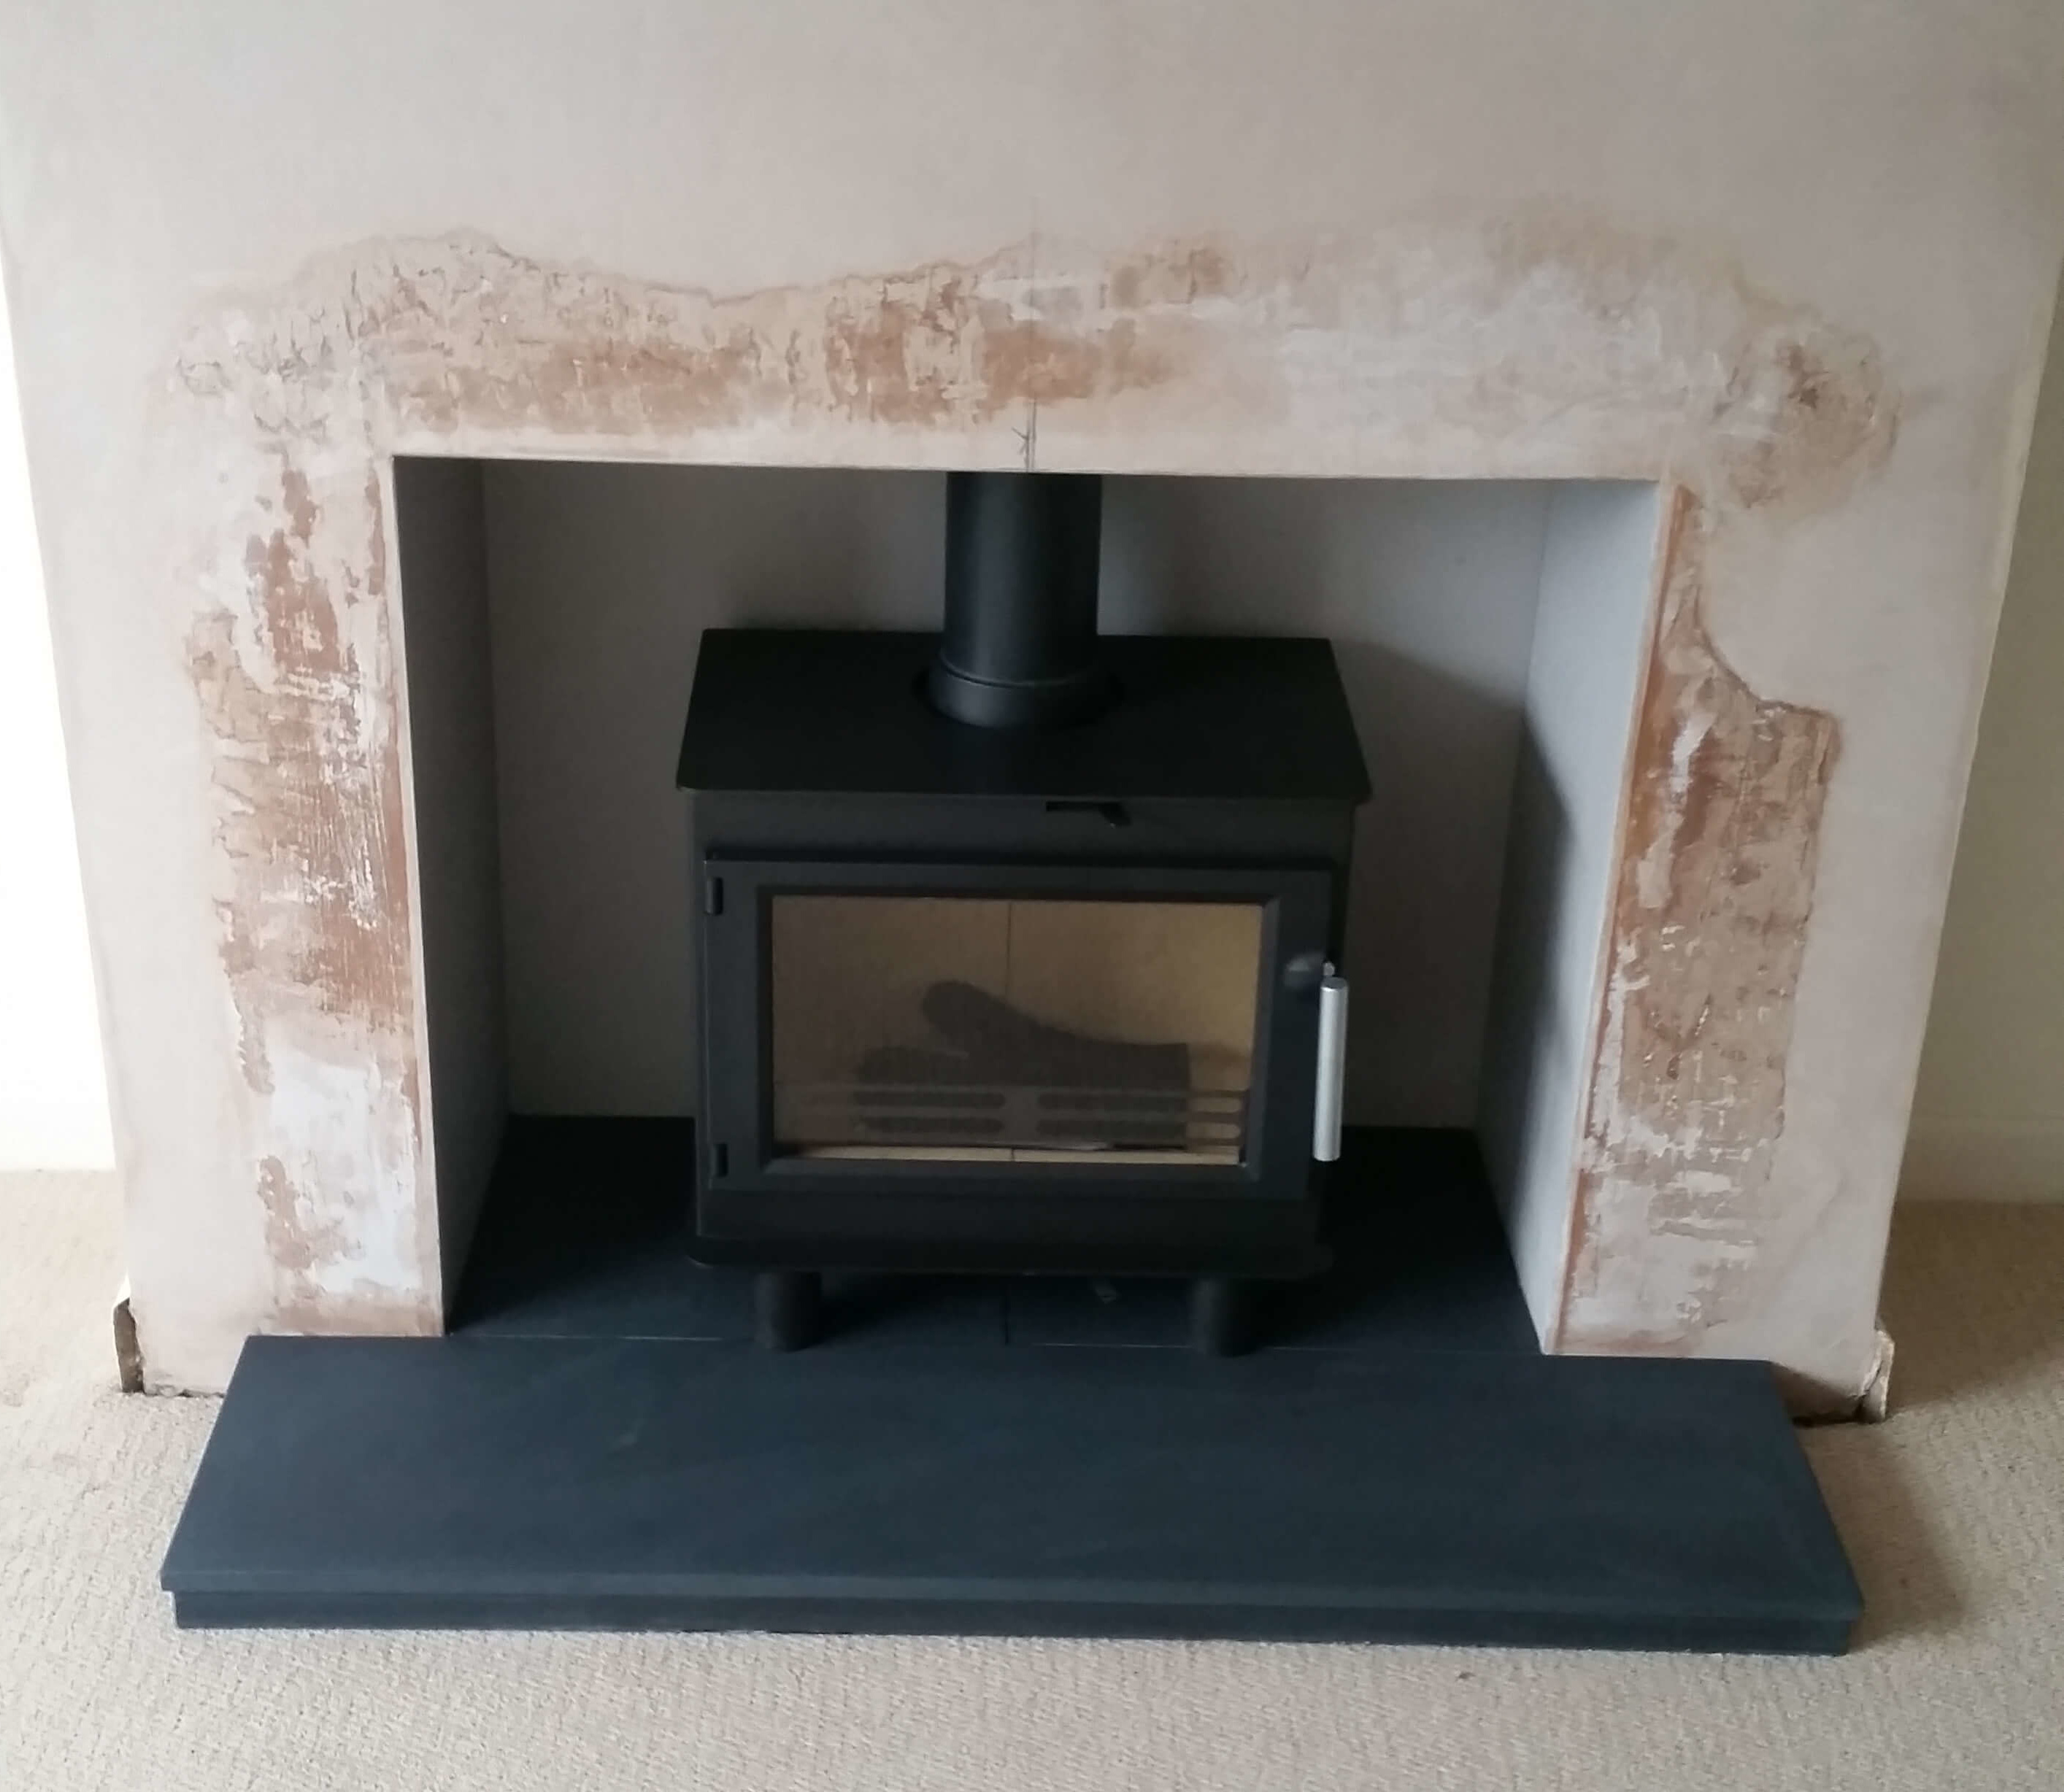 Woodburning stove with natural slate hearth & 316 grade chimney liner - Oldswinford, Stourbridge